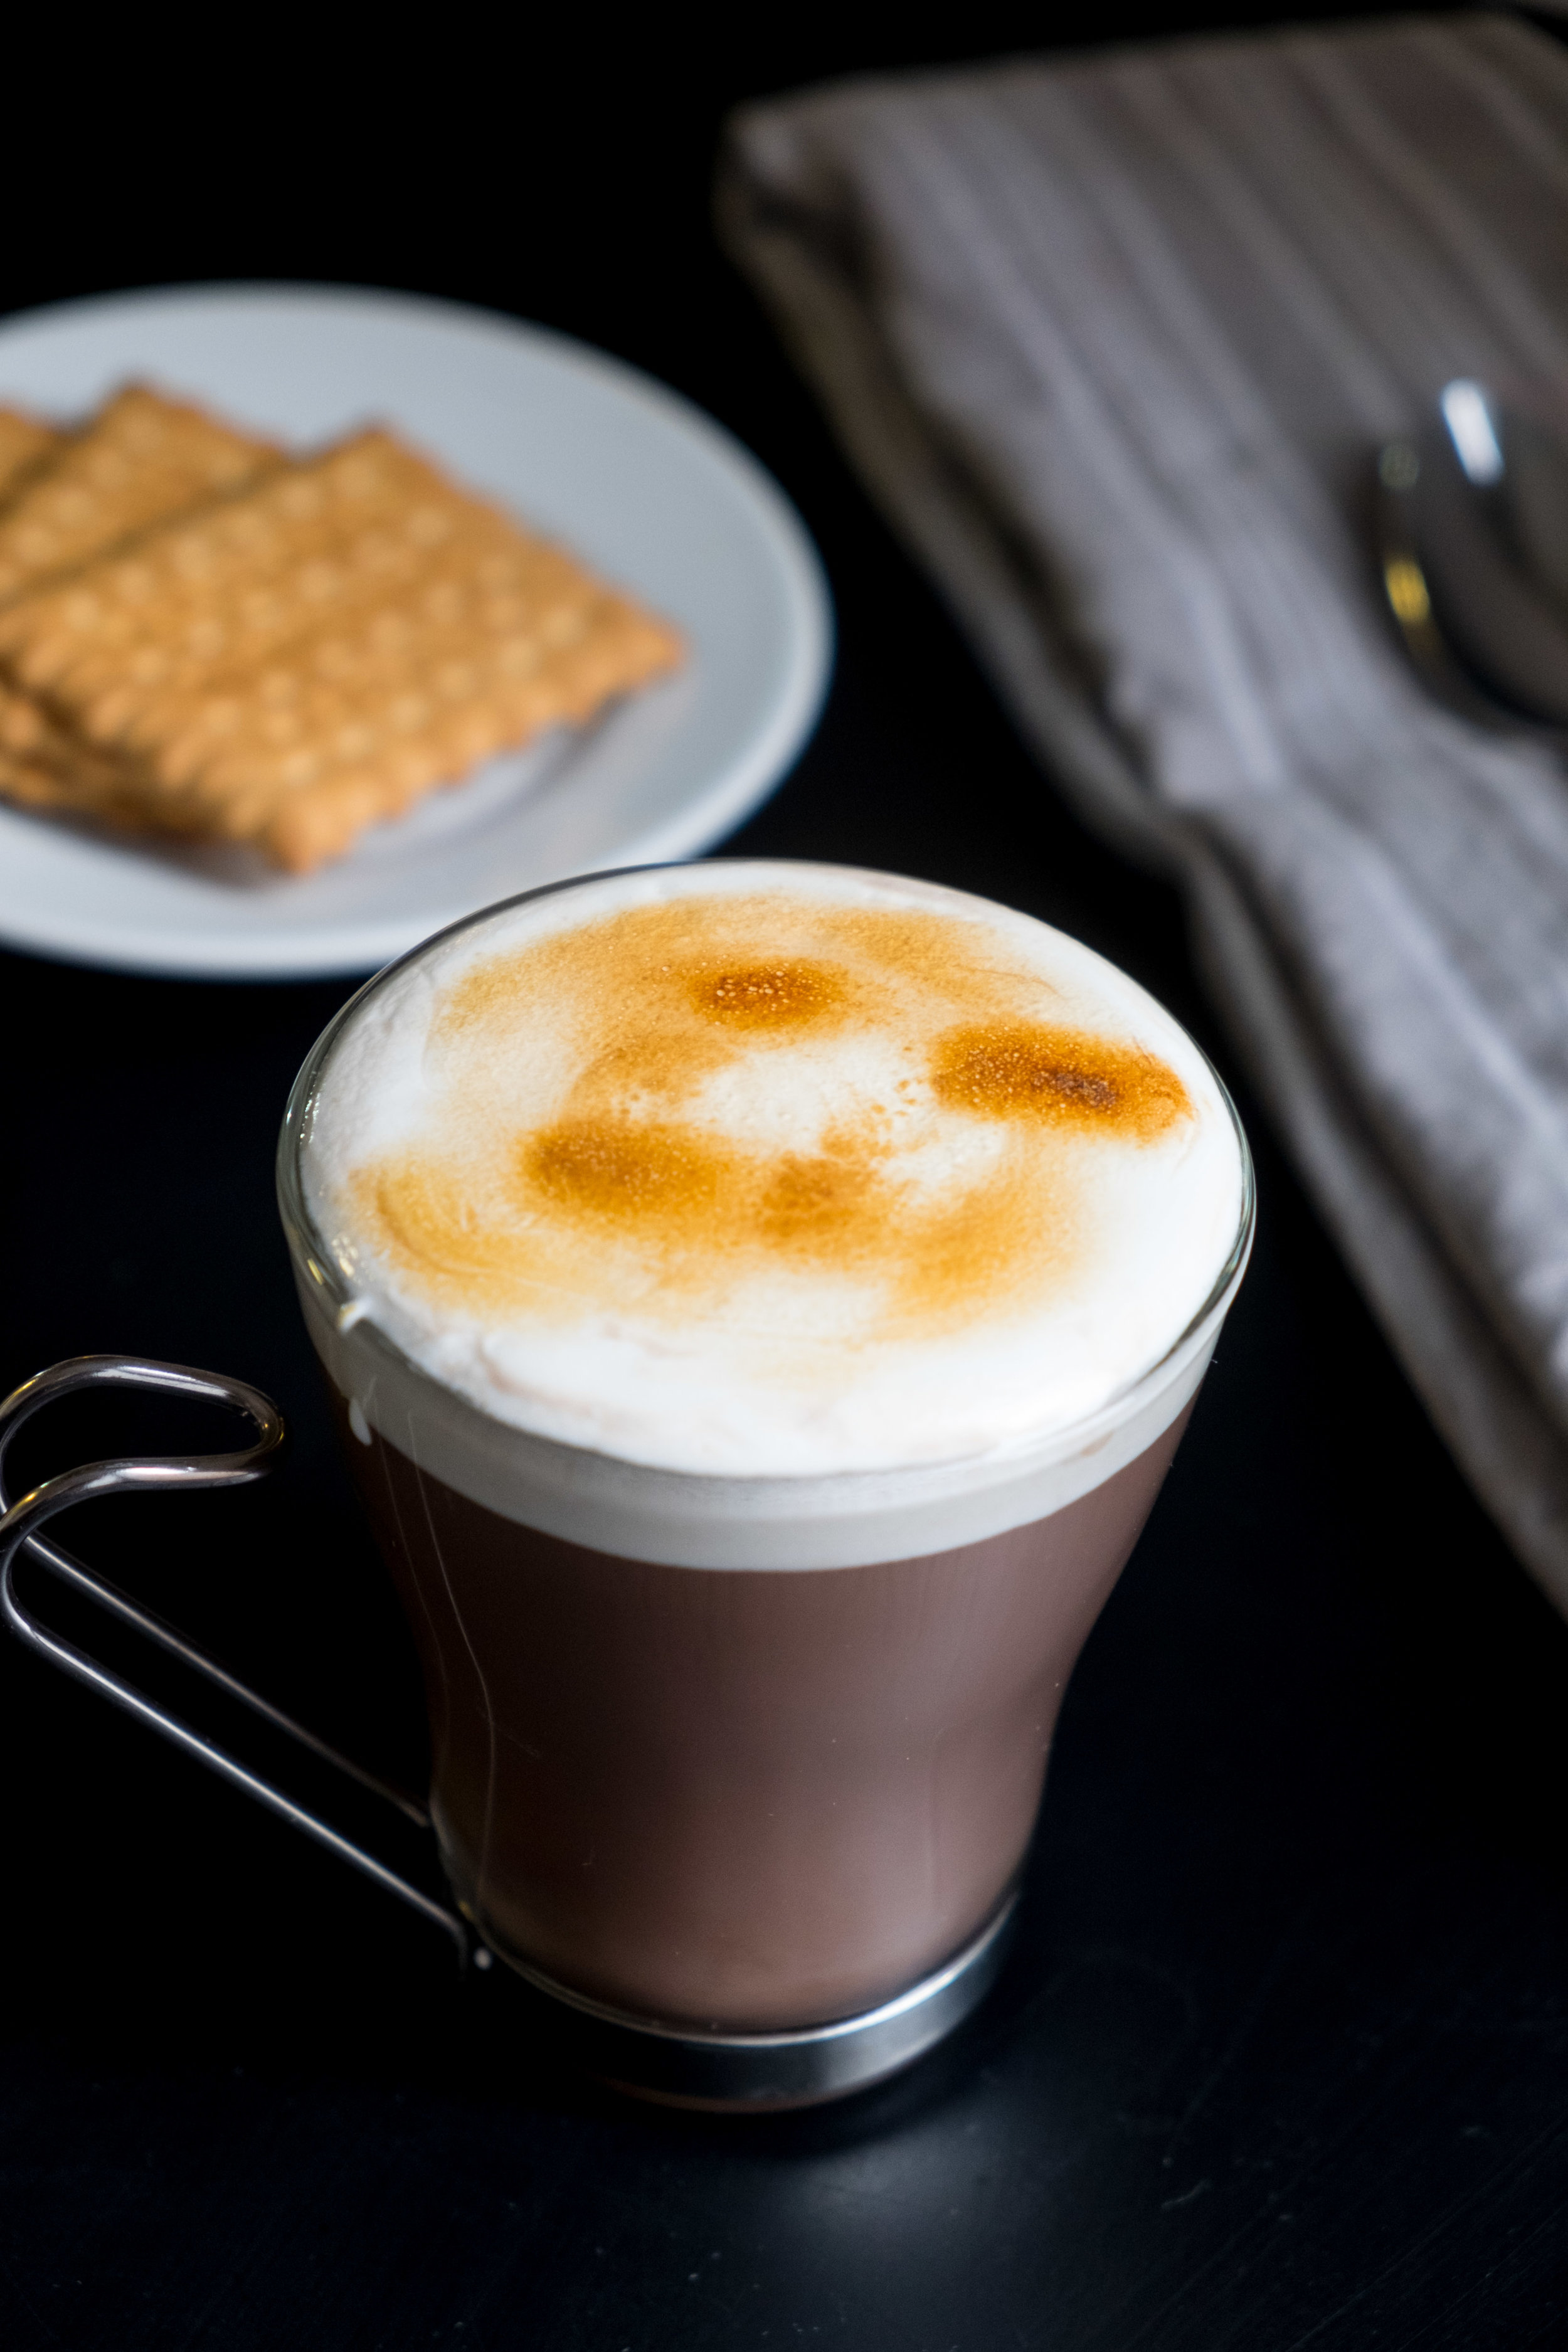 Hot chocolate with roasted marshmallow